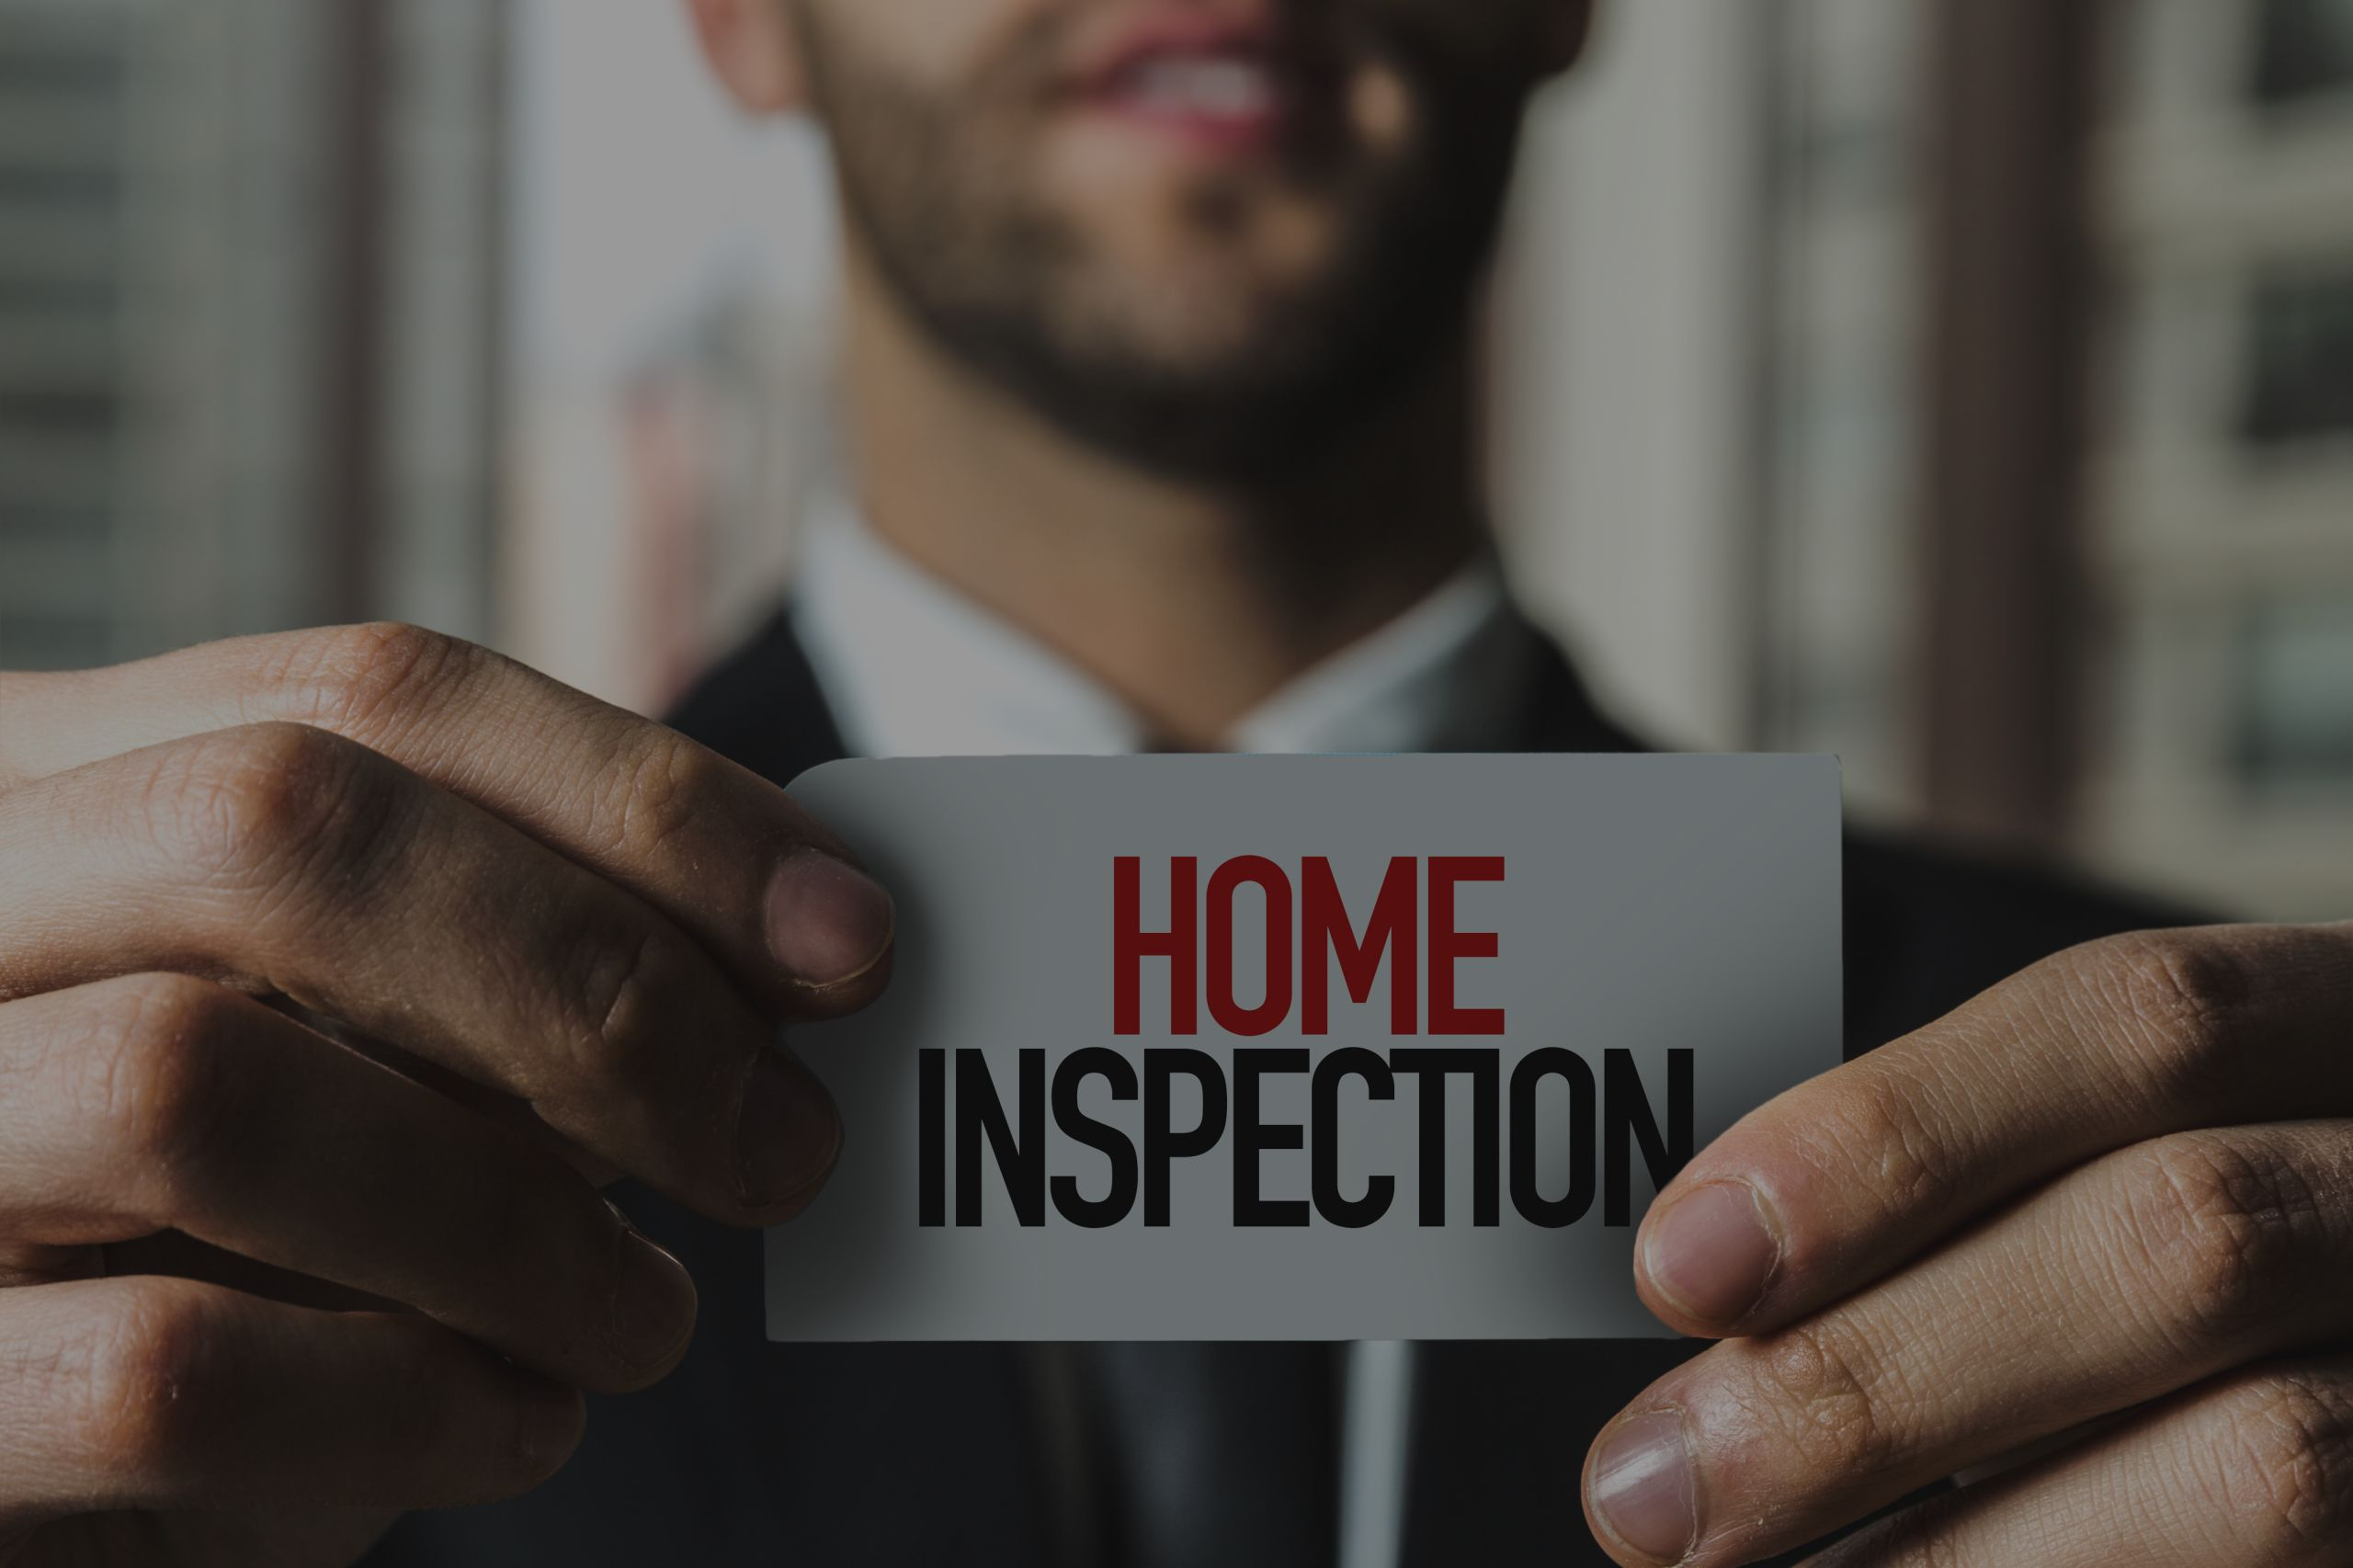 WHAT TO EXPECT WHEN YOU'RE INSPECTING